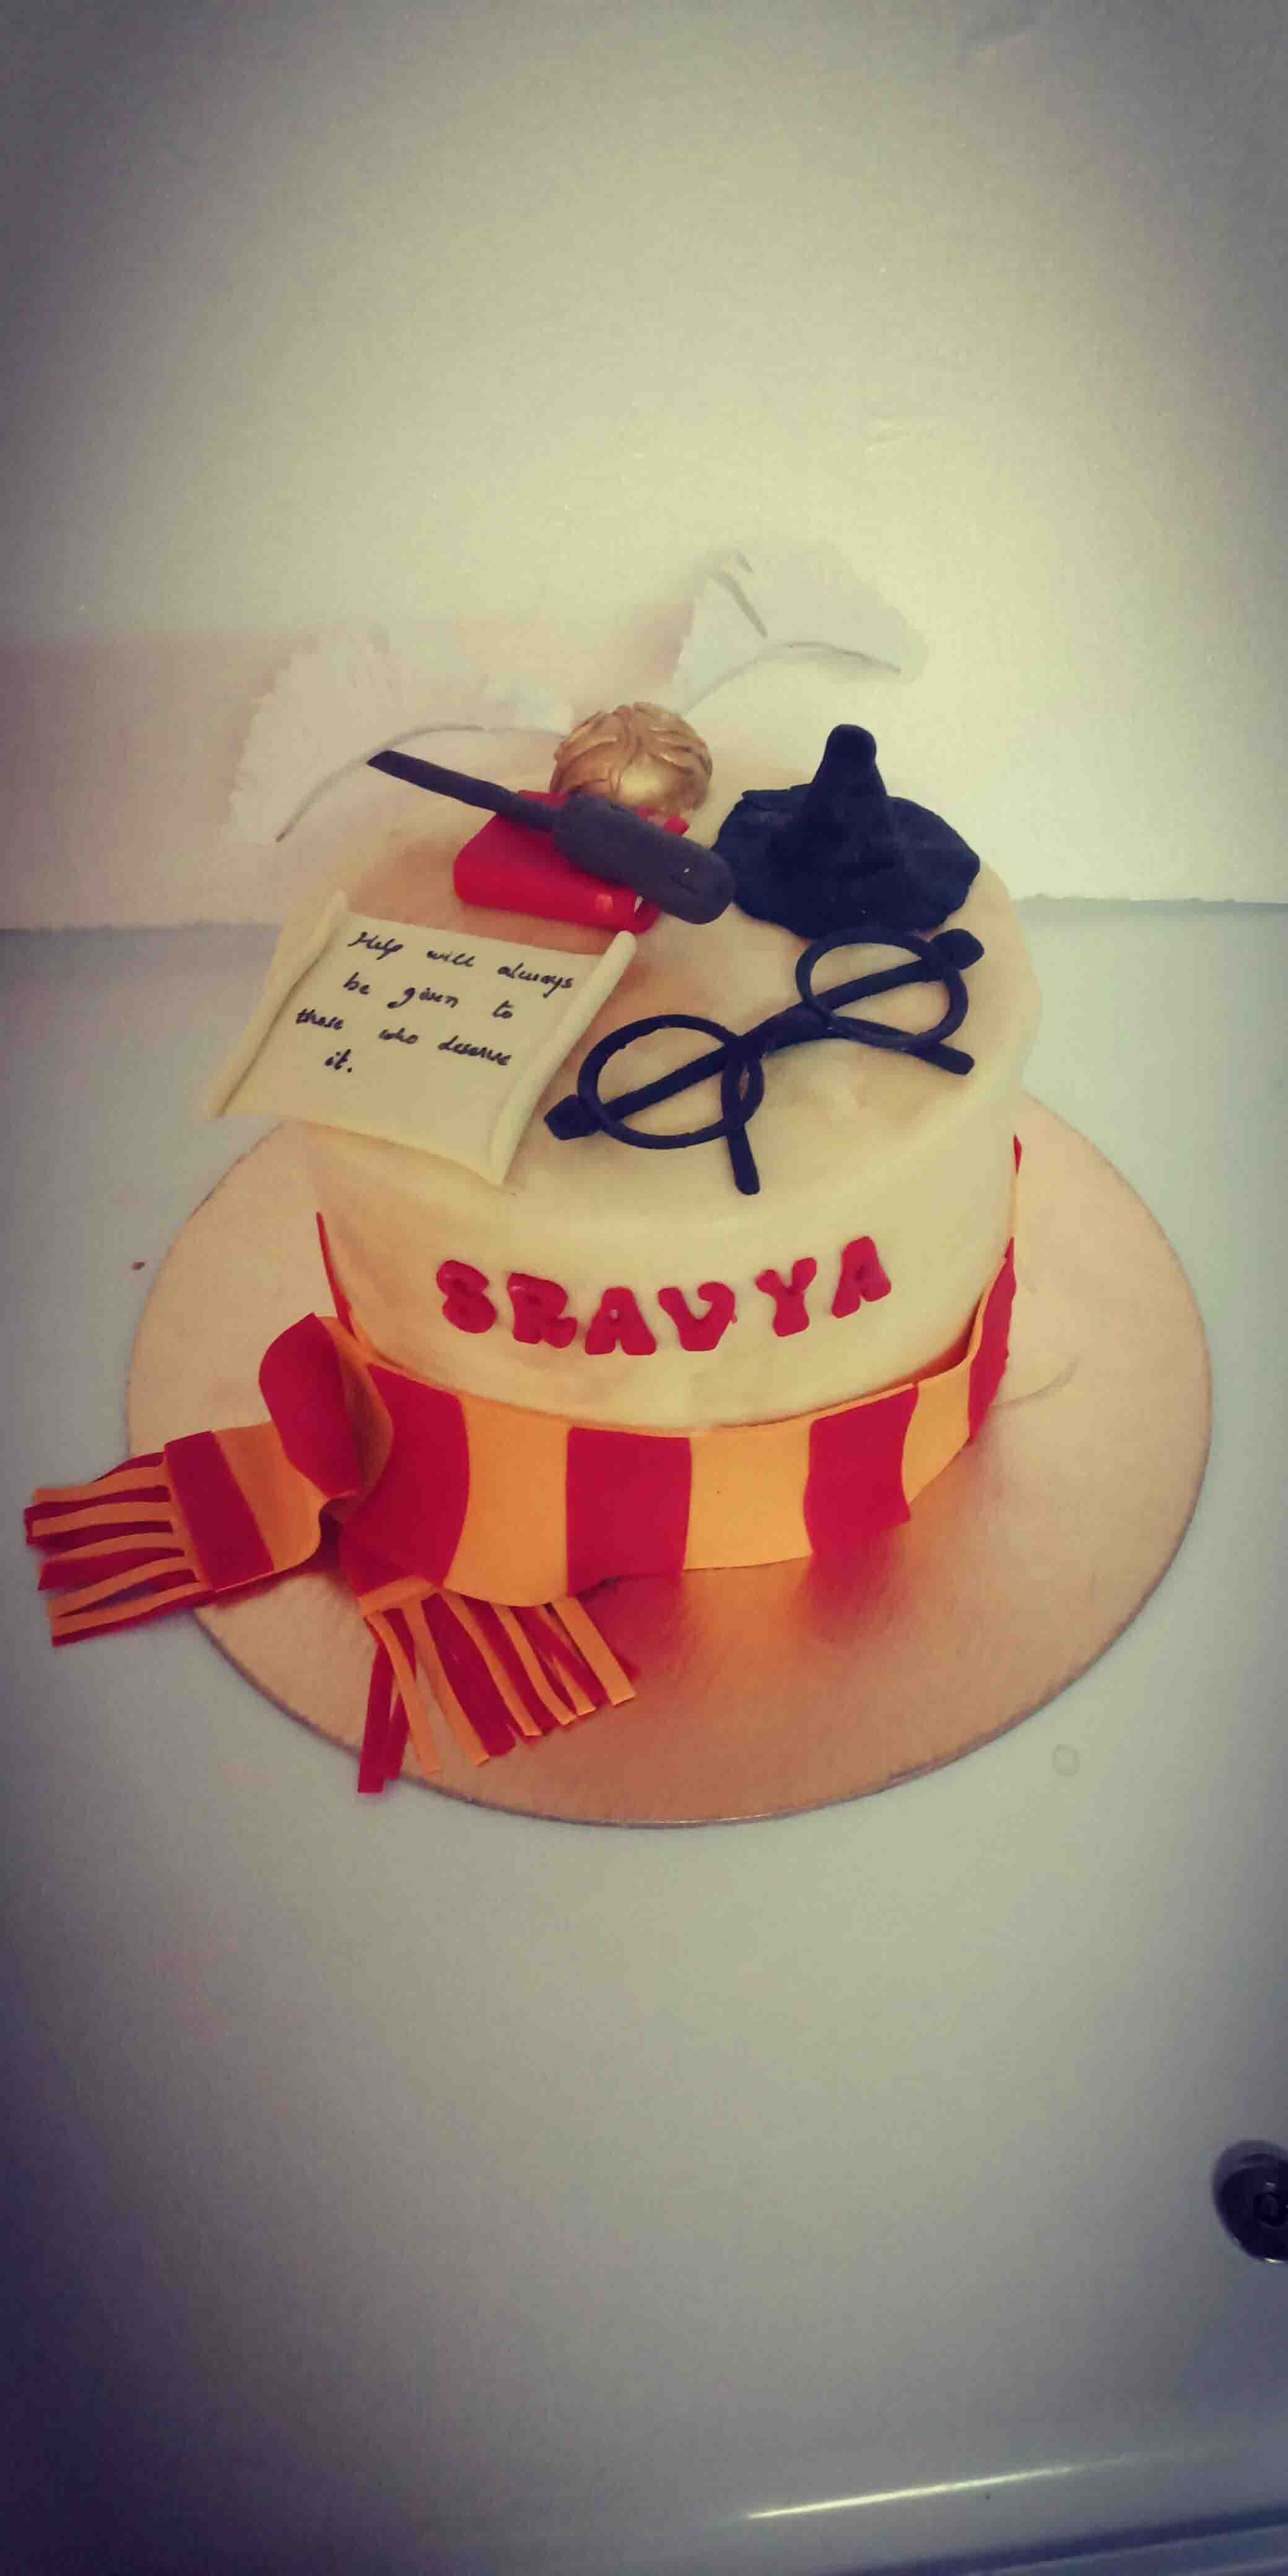 harrypotter fondant cake hyderabad,kids fondant cake,cake delivery,fondant cake hyderabad,fondant cakes for birthday hyderab